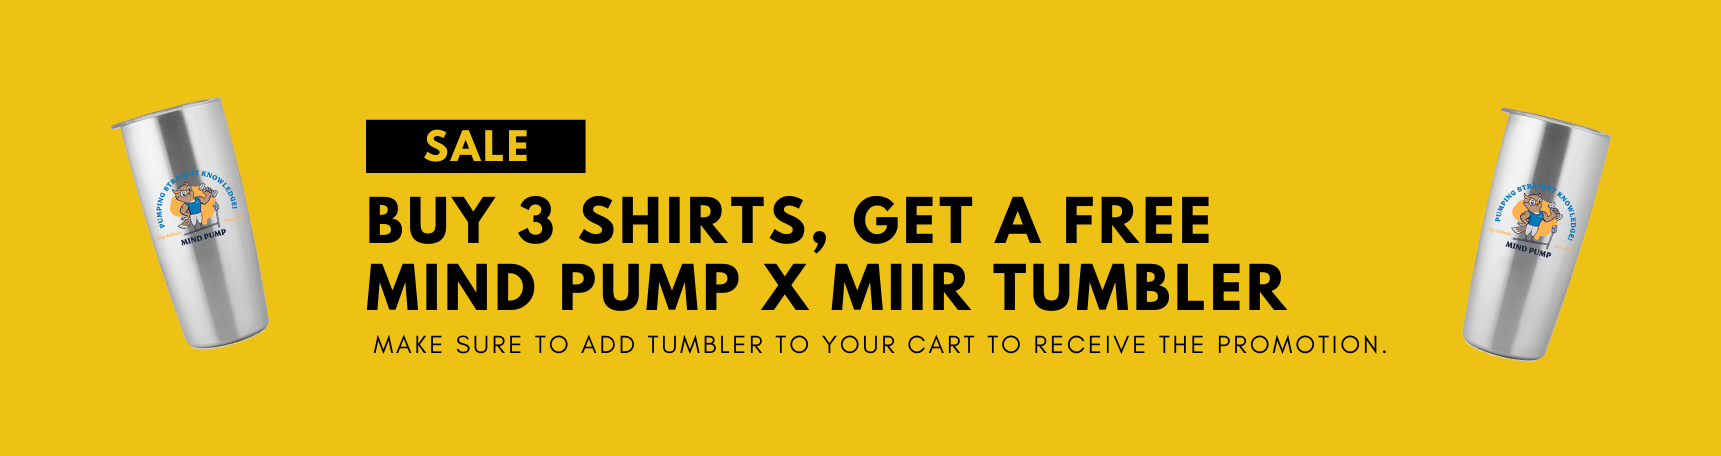 BUY 3 SHIRTS, GET A FREE MIIR #STAYAUTHENTIC BOTTLE (3)